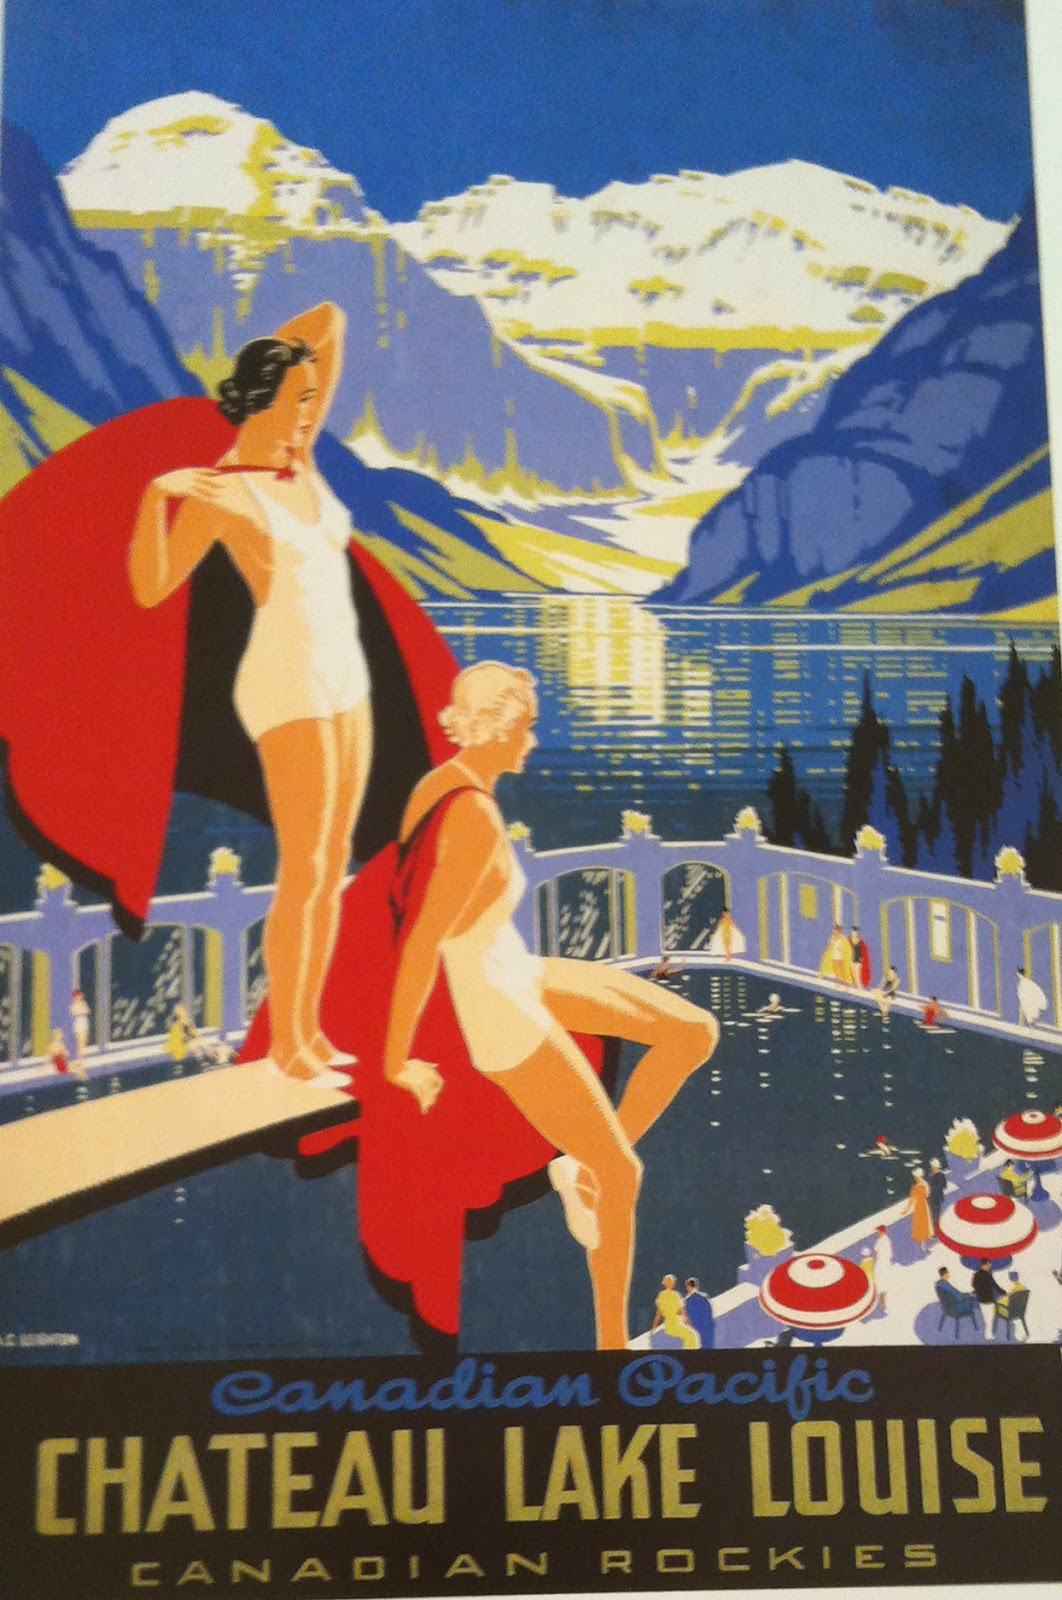 TRAVEL AND TOURISM POSTERS: A BRIEF HISTORY AND CANADA'S ...